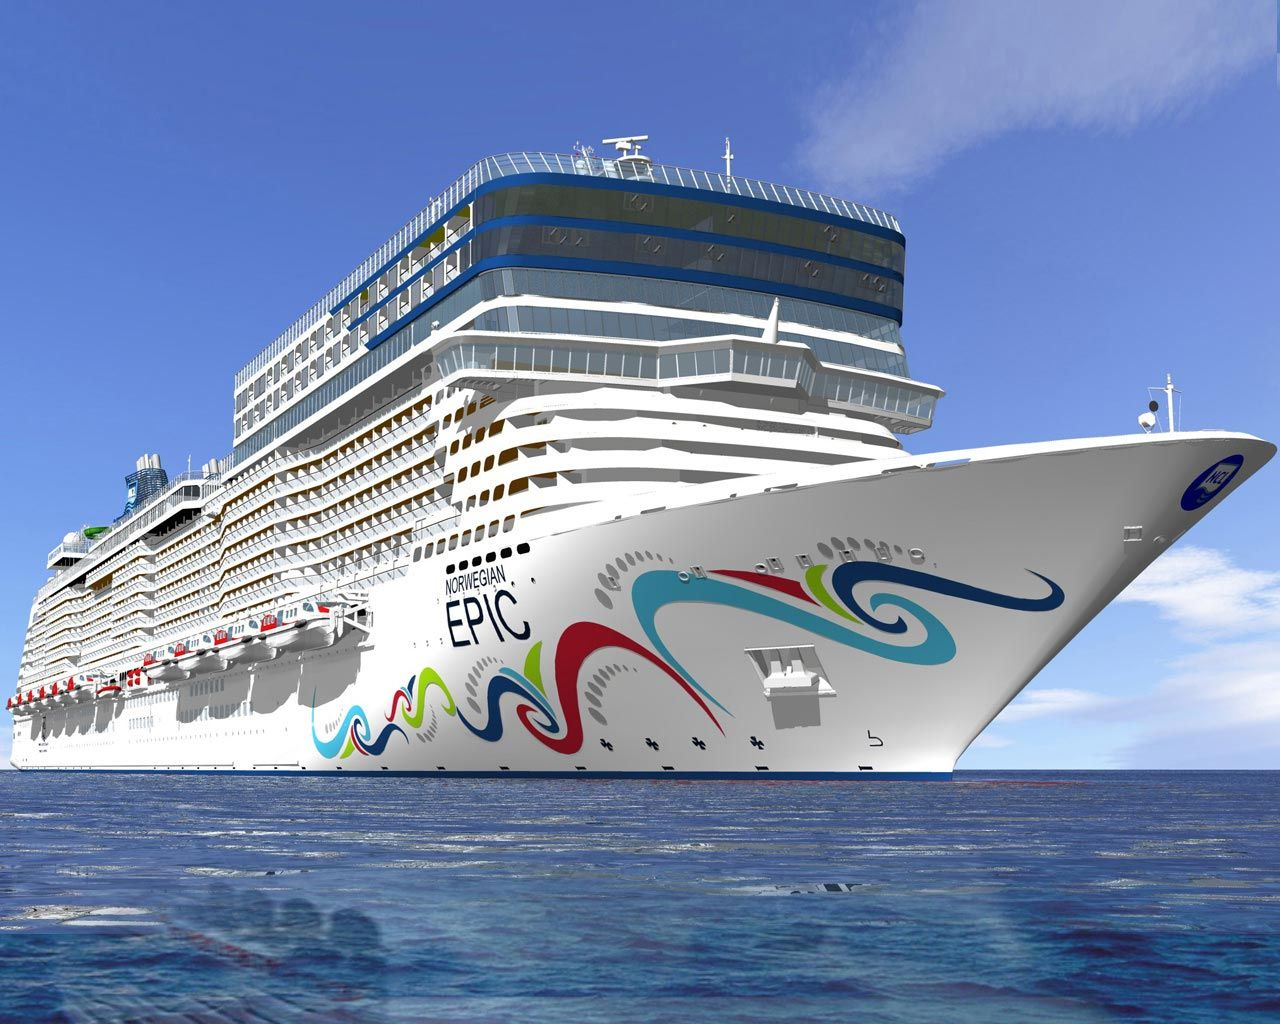 Norwegian Epic Feature The Largest Spa And Fitness Center